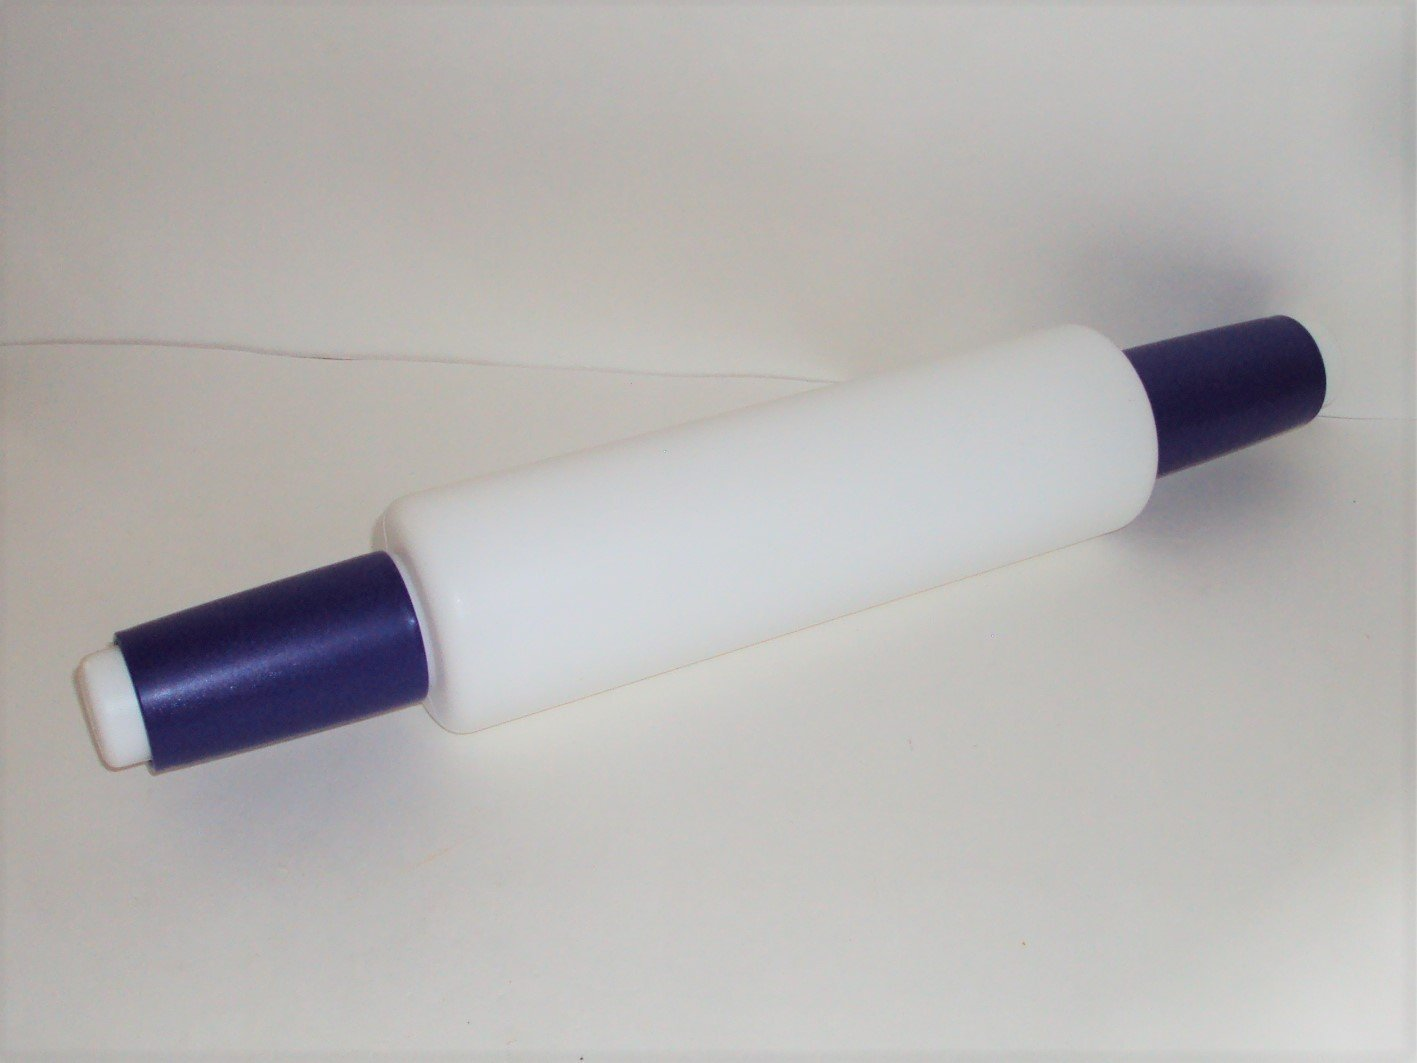 Tupperware Rolling Pin in Blue and White